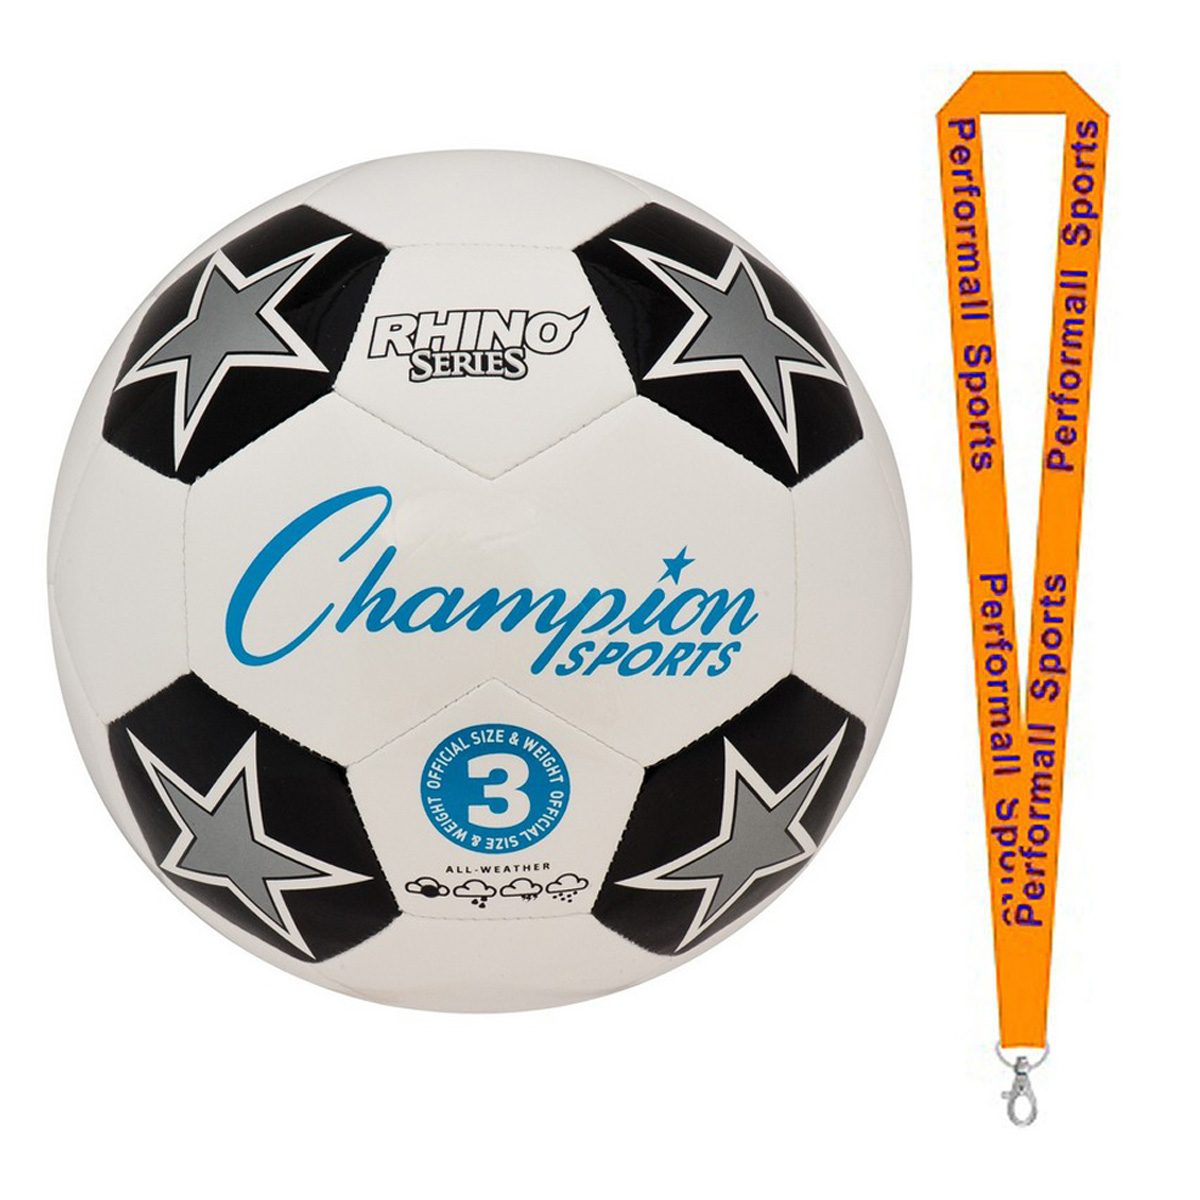 Champion Sports Bundle: RX Soccer Ball Assorted Colors and Sizes with 1 Performall Lanyard